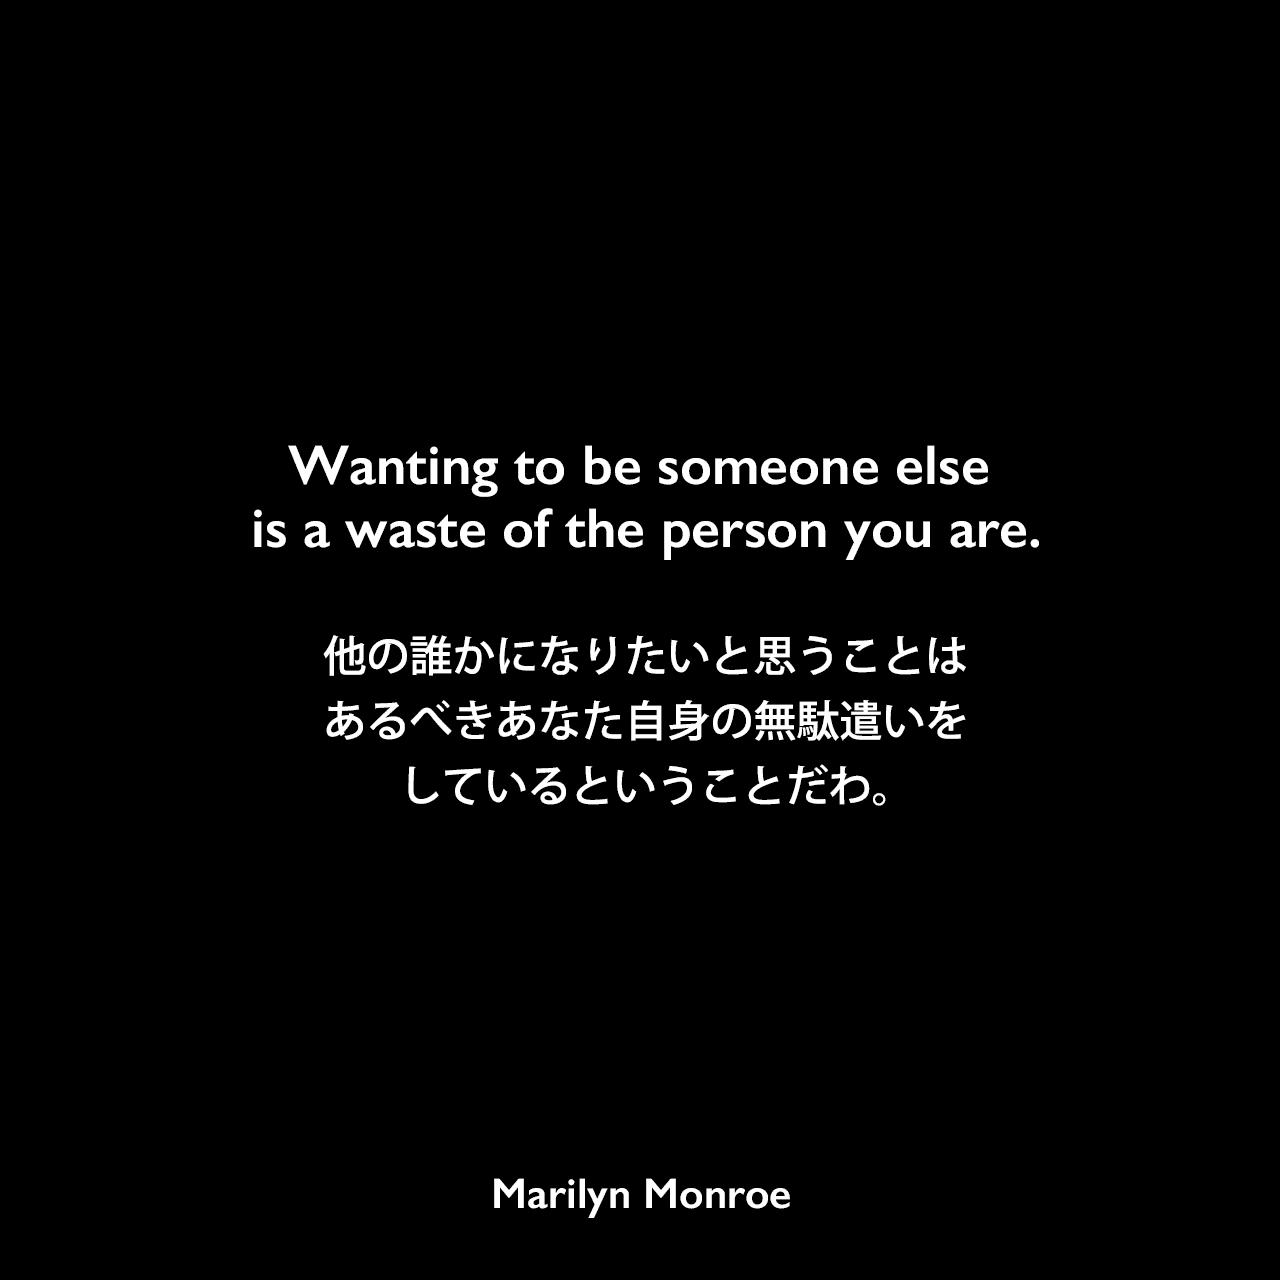 Wanting to be someone else is a waste of the person you are.他の誰かになりたいと思うことは、あるべきあなた自身の無駄遣いをしているということだわ。Marilyn Monroe